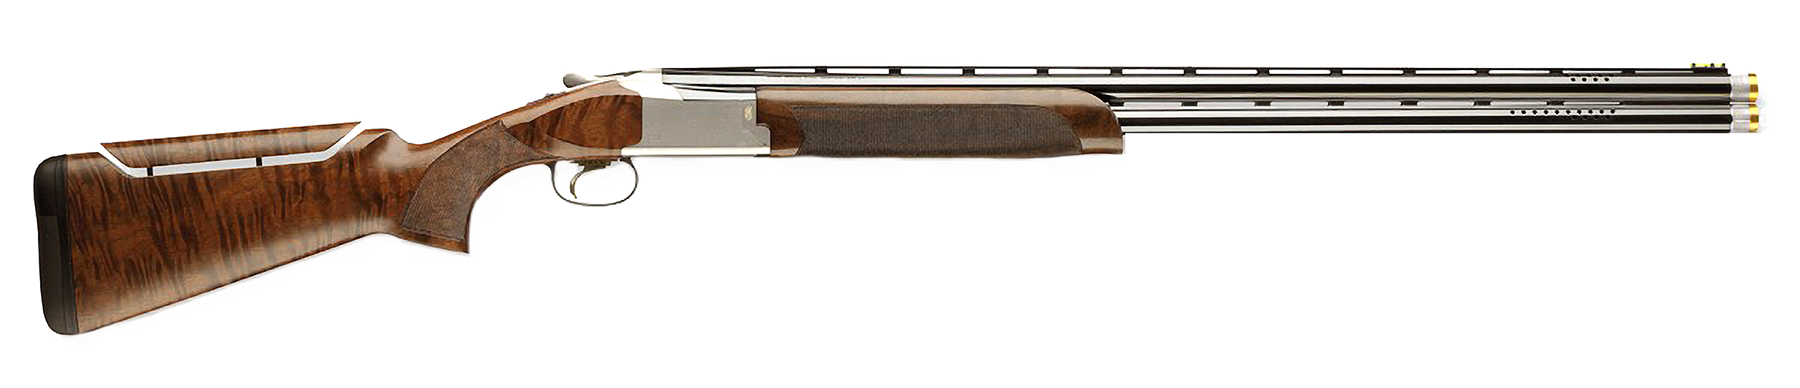 Browning Citori 725 Sporting Adjustable Over/Under Shotgun 3'' 12 Gauge 32'' Silver Nitride Steel - Grade III Gloss/Grade IV Walnut